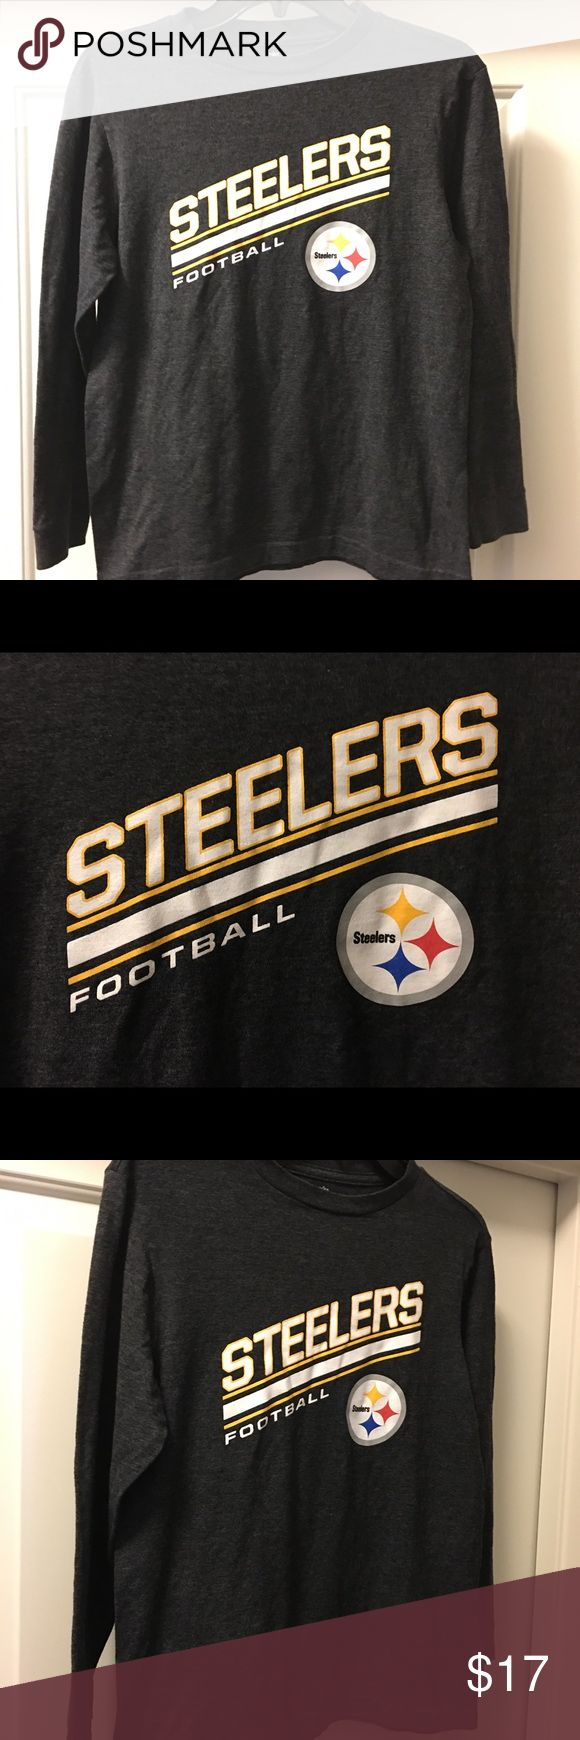 "Boys LS NFL Pittsburgh Steelers shirt sz: L 10/12 Thank you for viewing my listing, for sale is a boys, NFL brand, Pittsburg Steelers, gray, longsleeve shirt. Shirt is in very good condition. No rips, stains, or cracking in the screen print.  If you have any questions or would like additional photos please feel free to ask.  Sz: L 10/12  From under one arm to under the other measures appx 18"" from the top of the shoulder to the bottom of the shirt measures appx 23"" NFL Shirts & Tops Tees…"